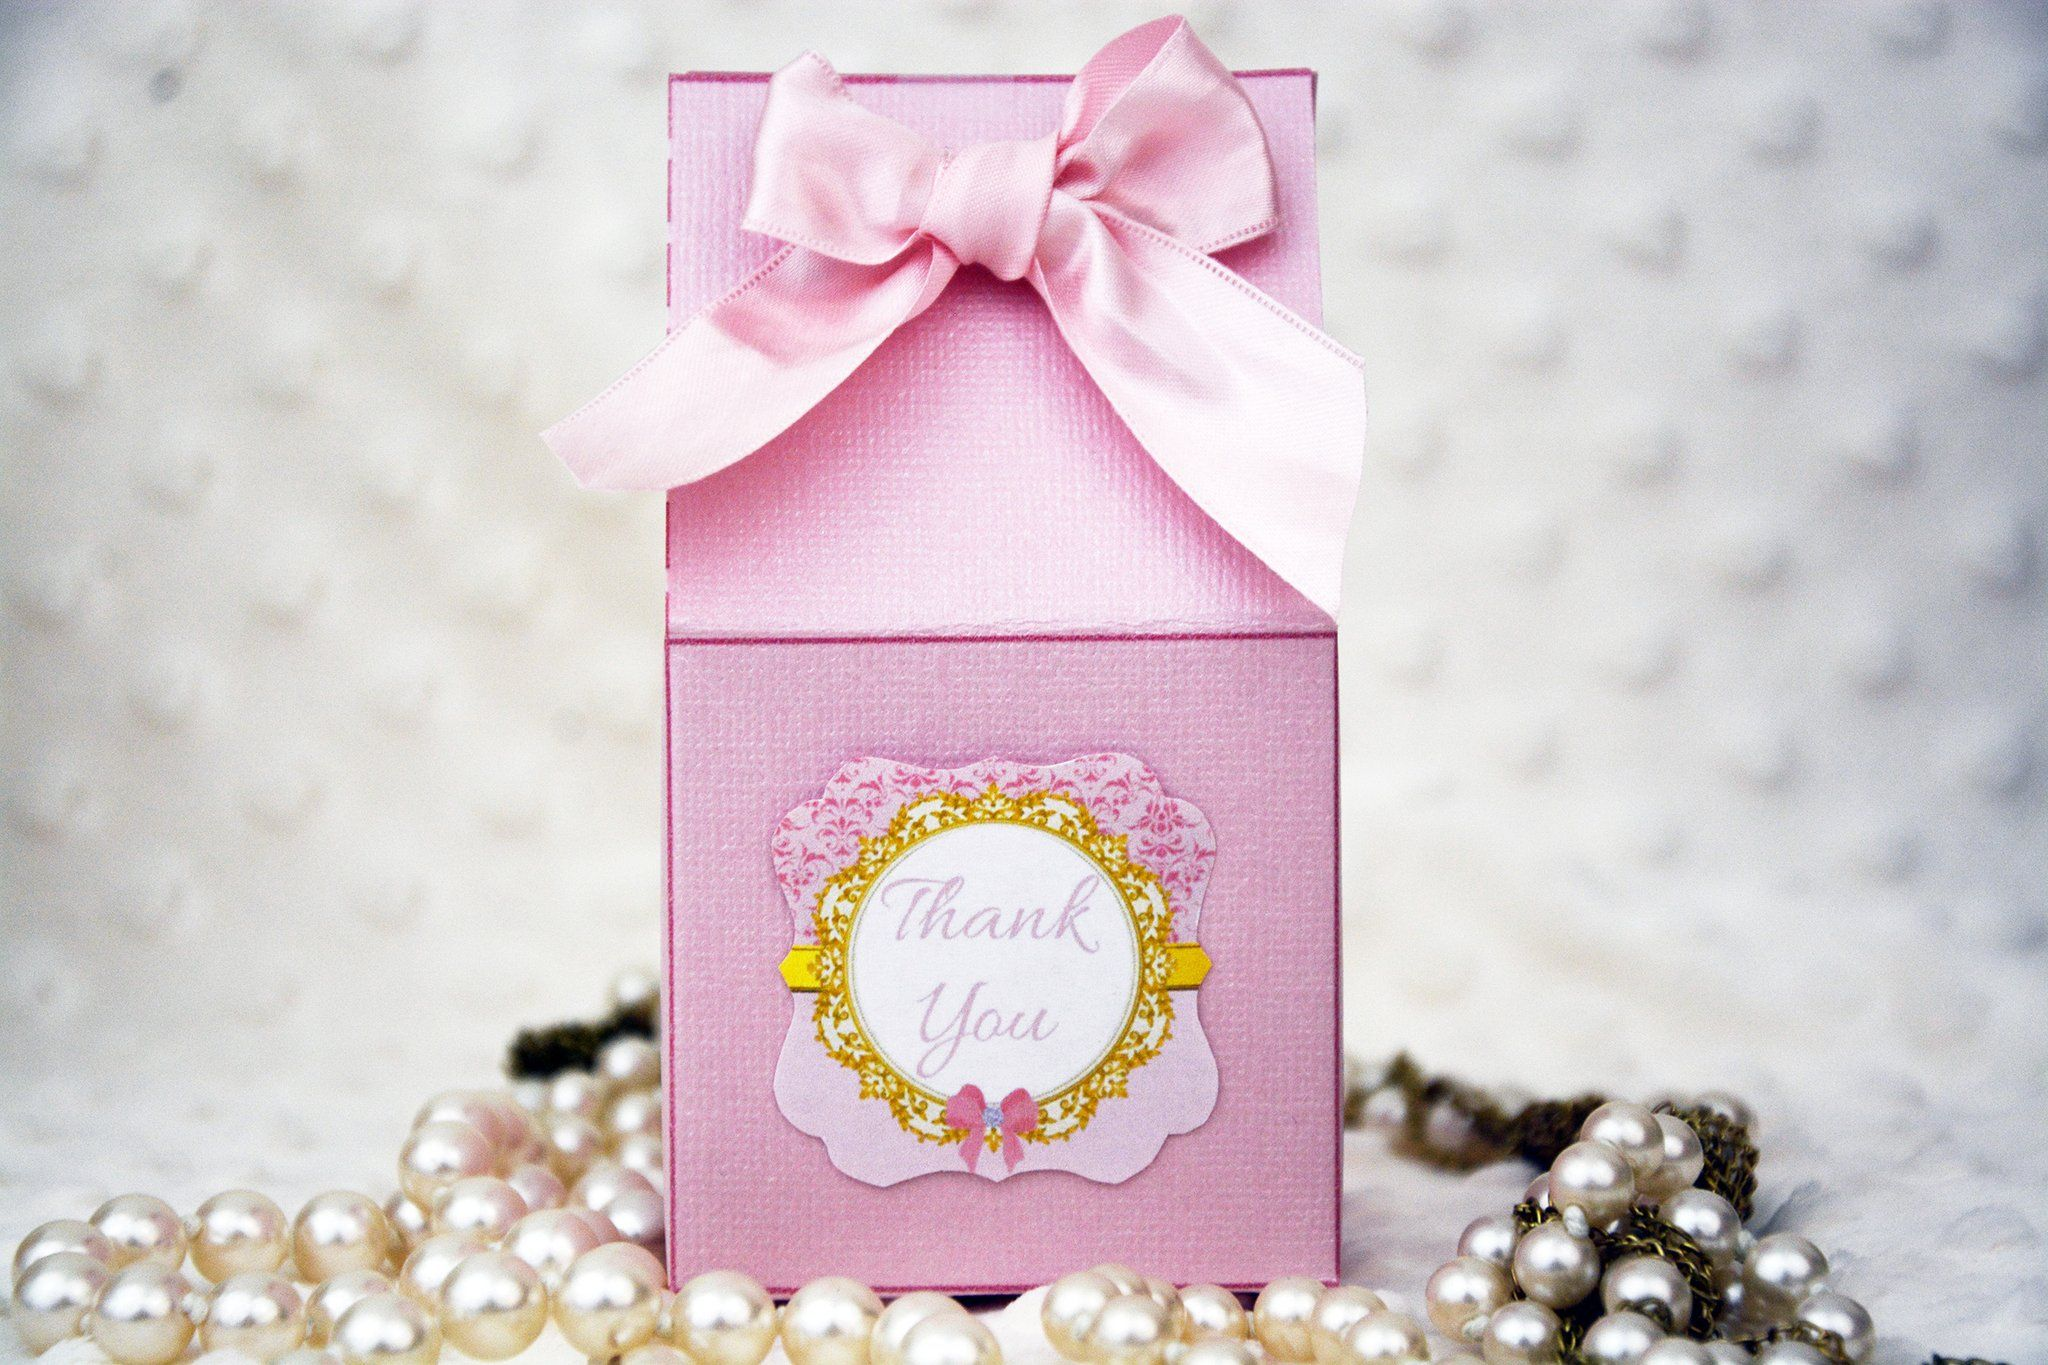 Pink and Gold Favor Boxes | Pinterest | Favors and Gold birthday